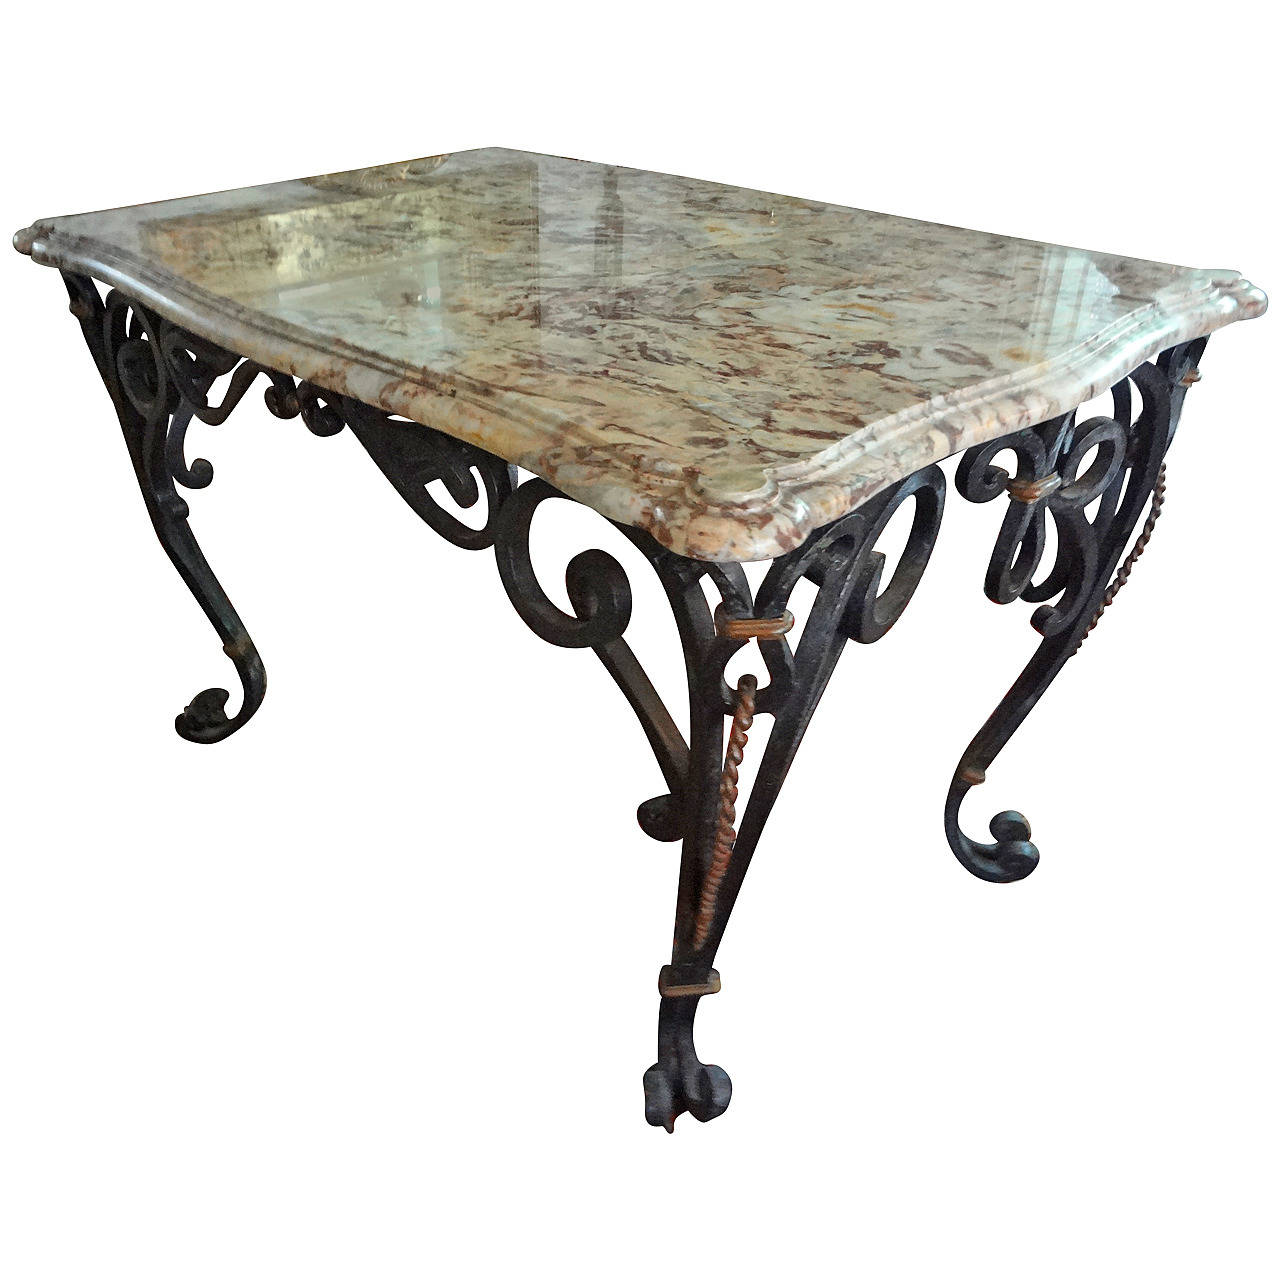 Gilbert Poillerat Inspired French Wrought Iron Center Table With